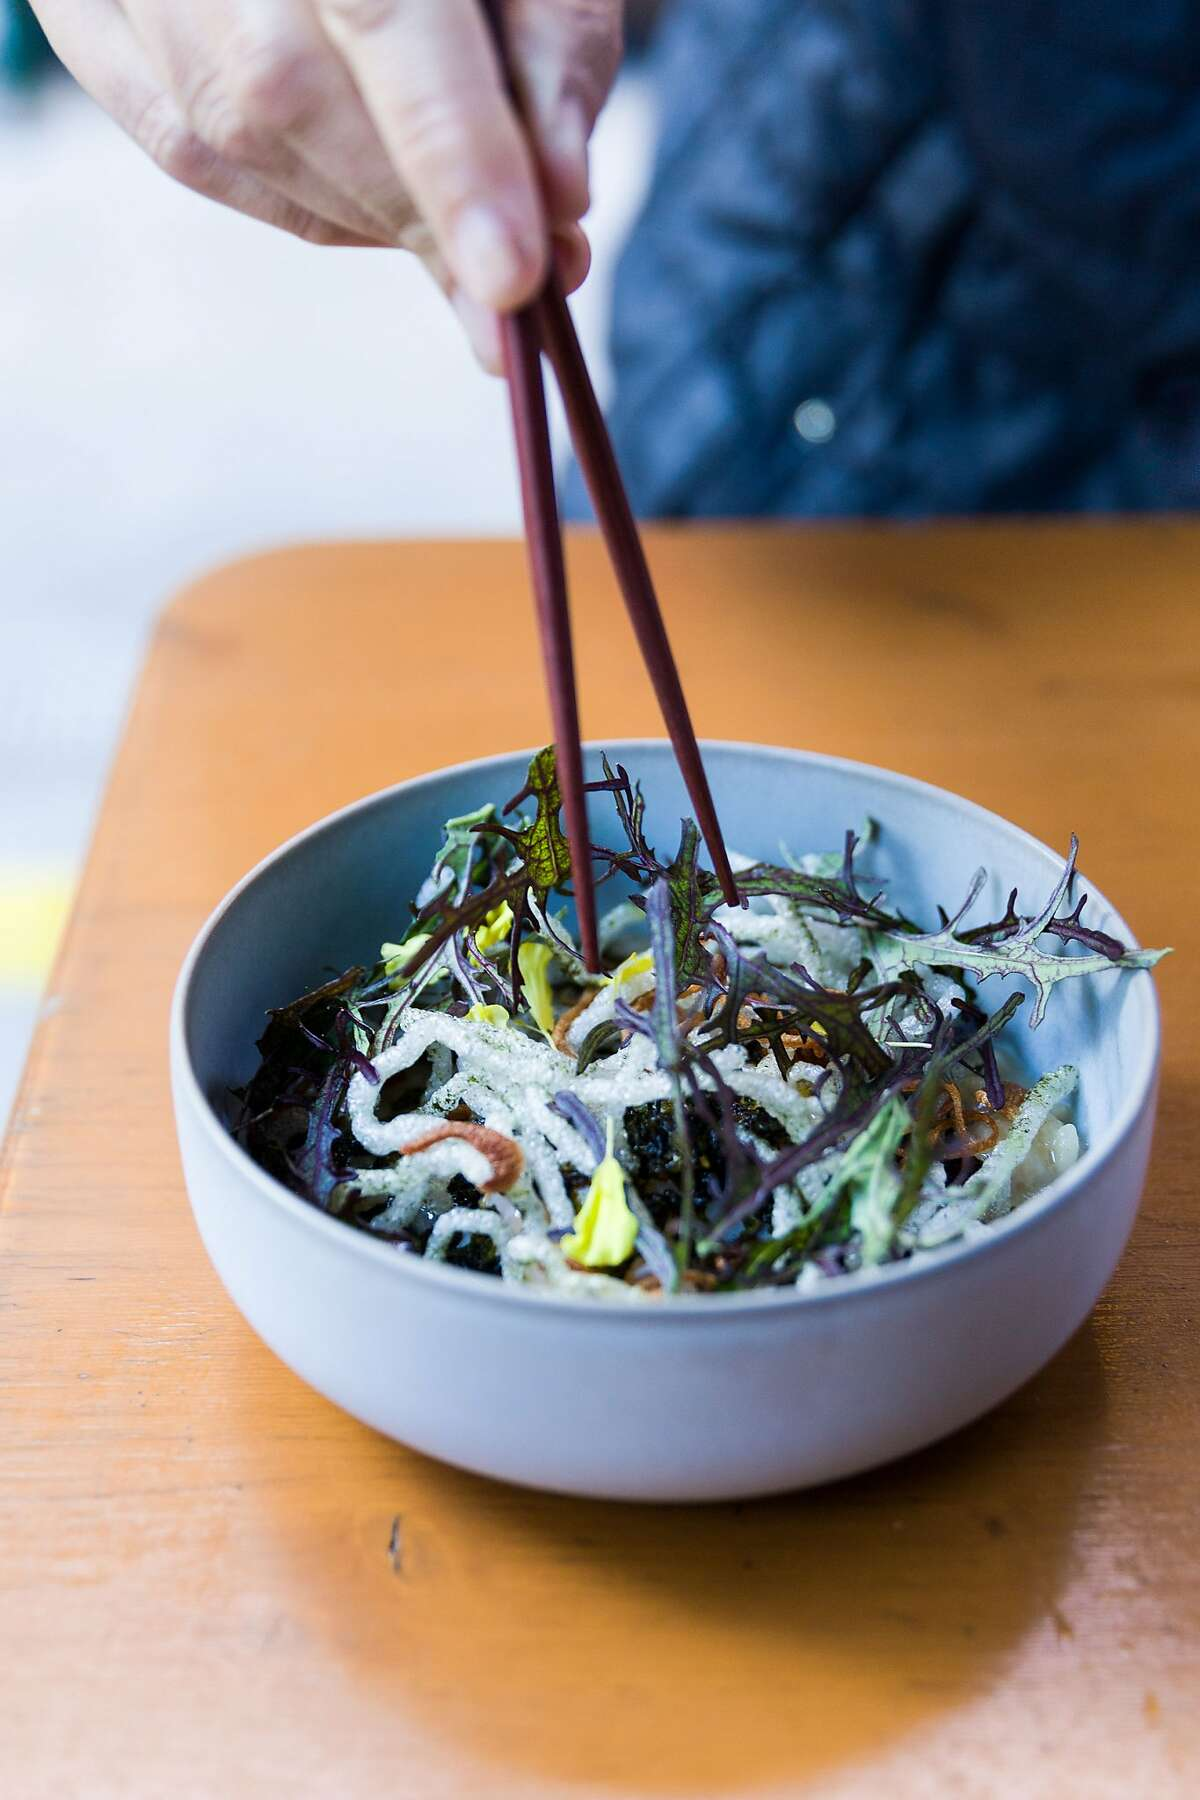 Hen-zhi is a Taiwanese food pop-up by Marcelle and Christopher Yang.